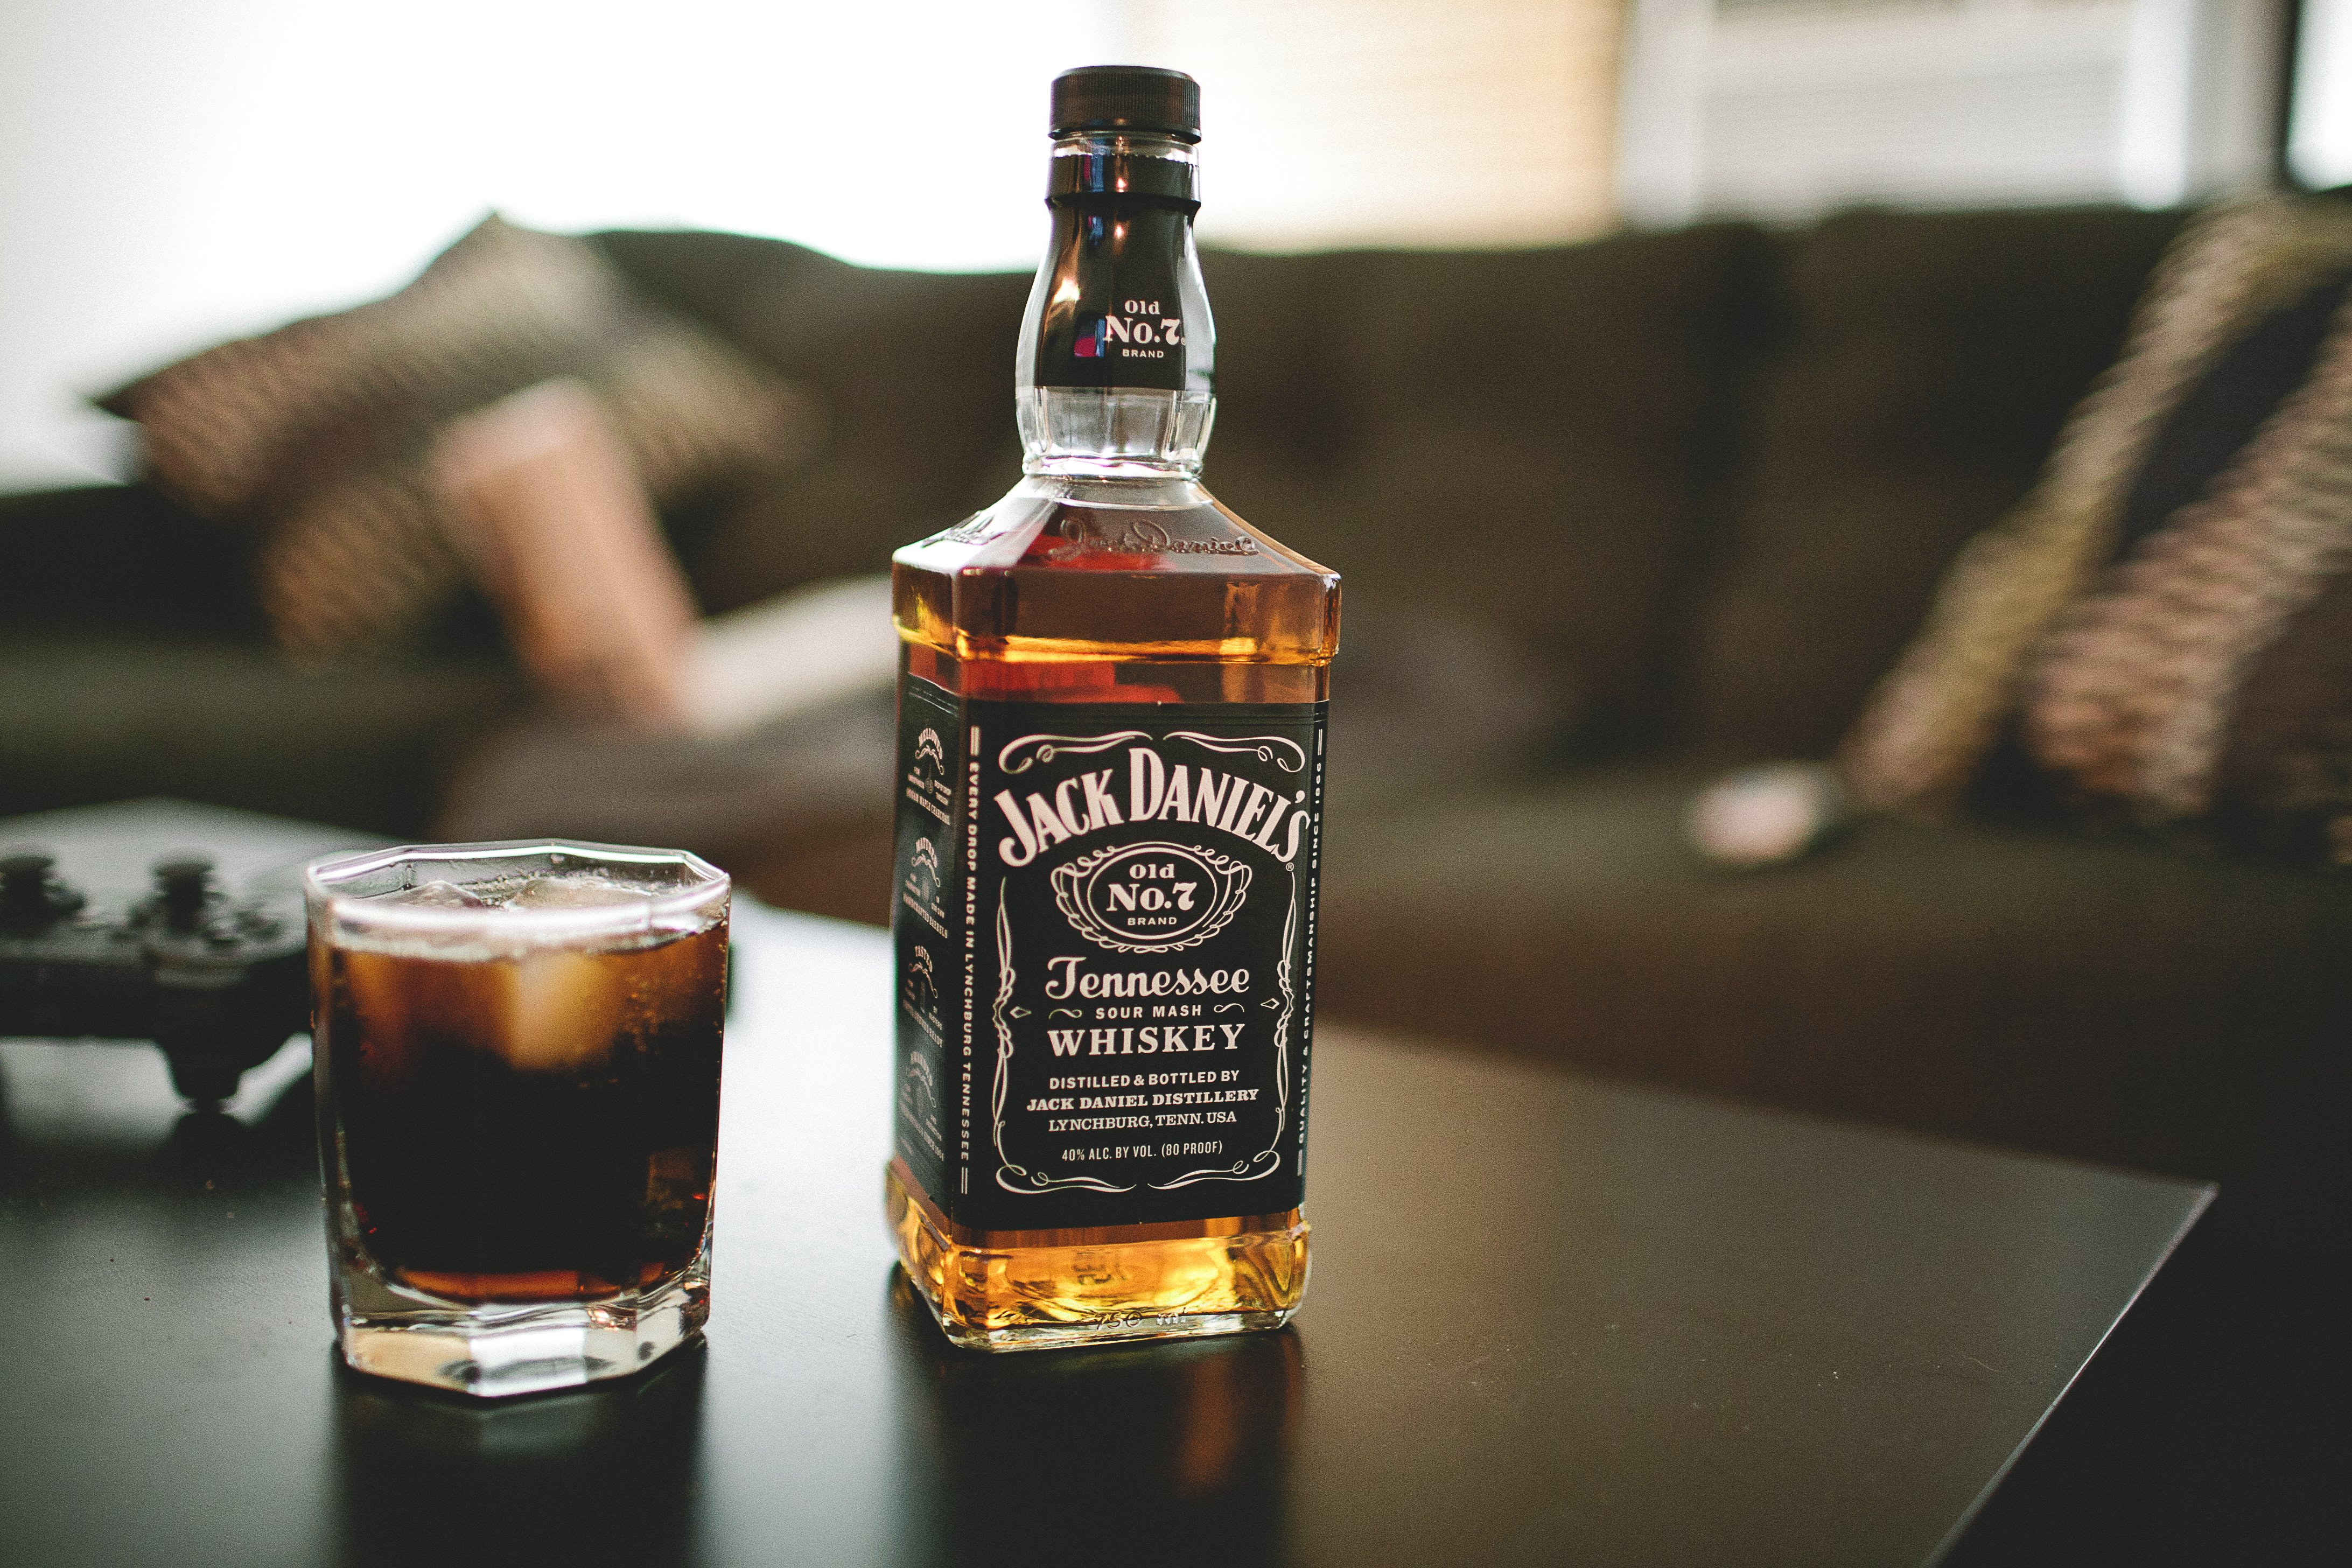 Jack daniels whiskey bottle glass alcohol wallpaper 4368x2912 620493 wallpaperup for Photos jack daniels